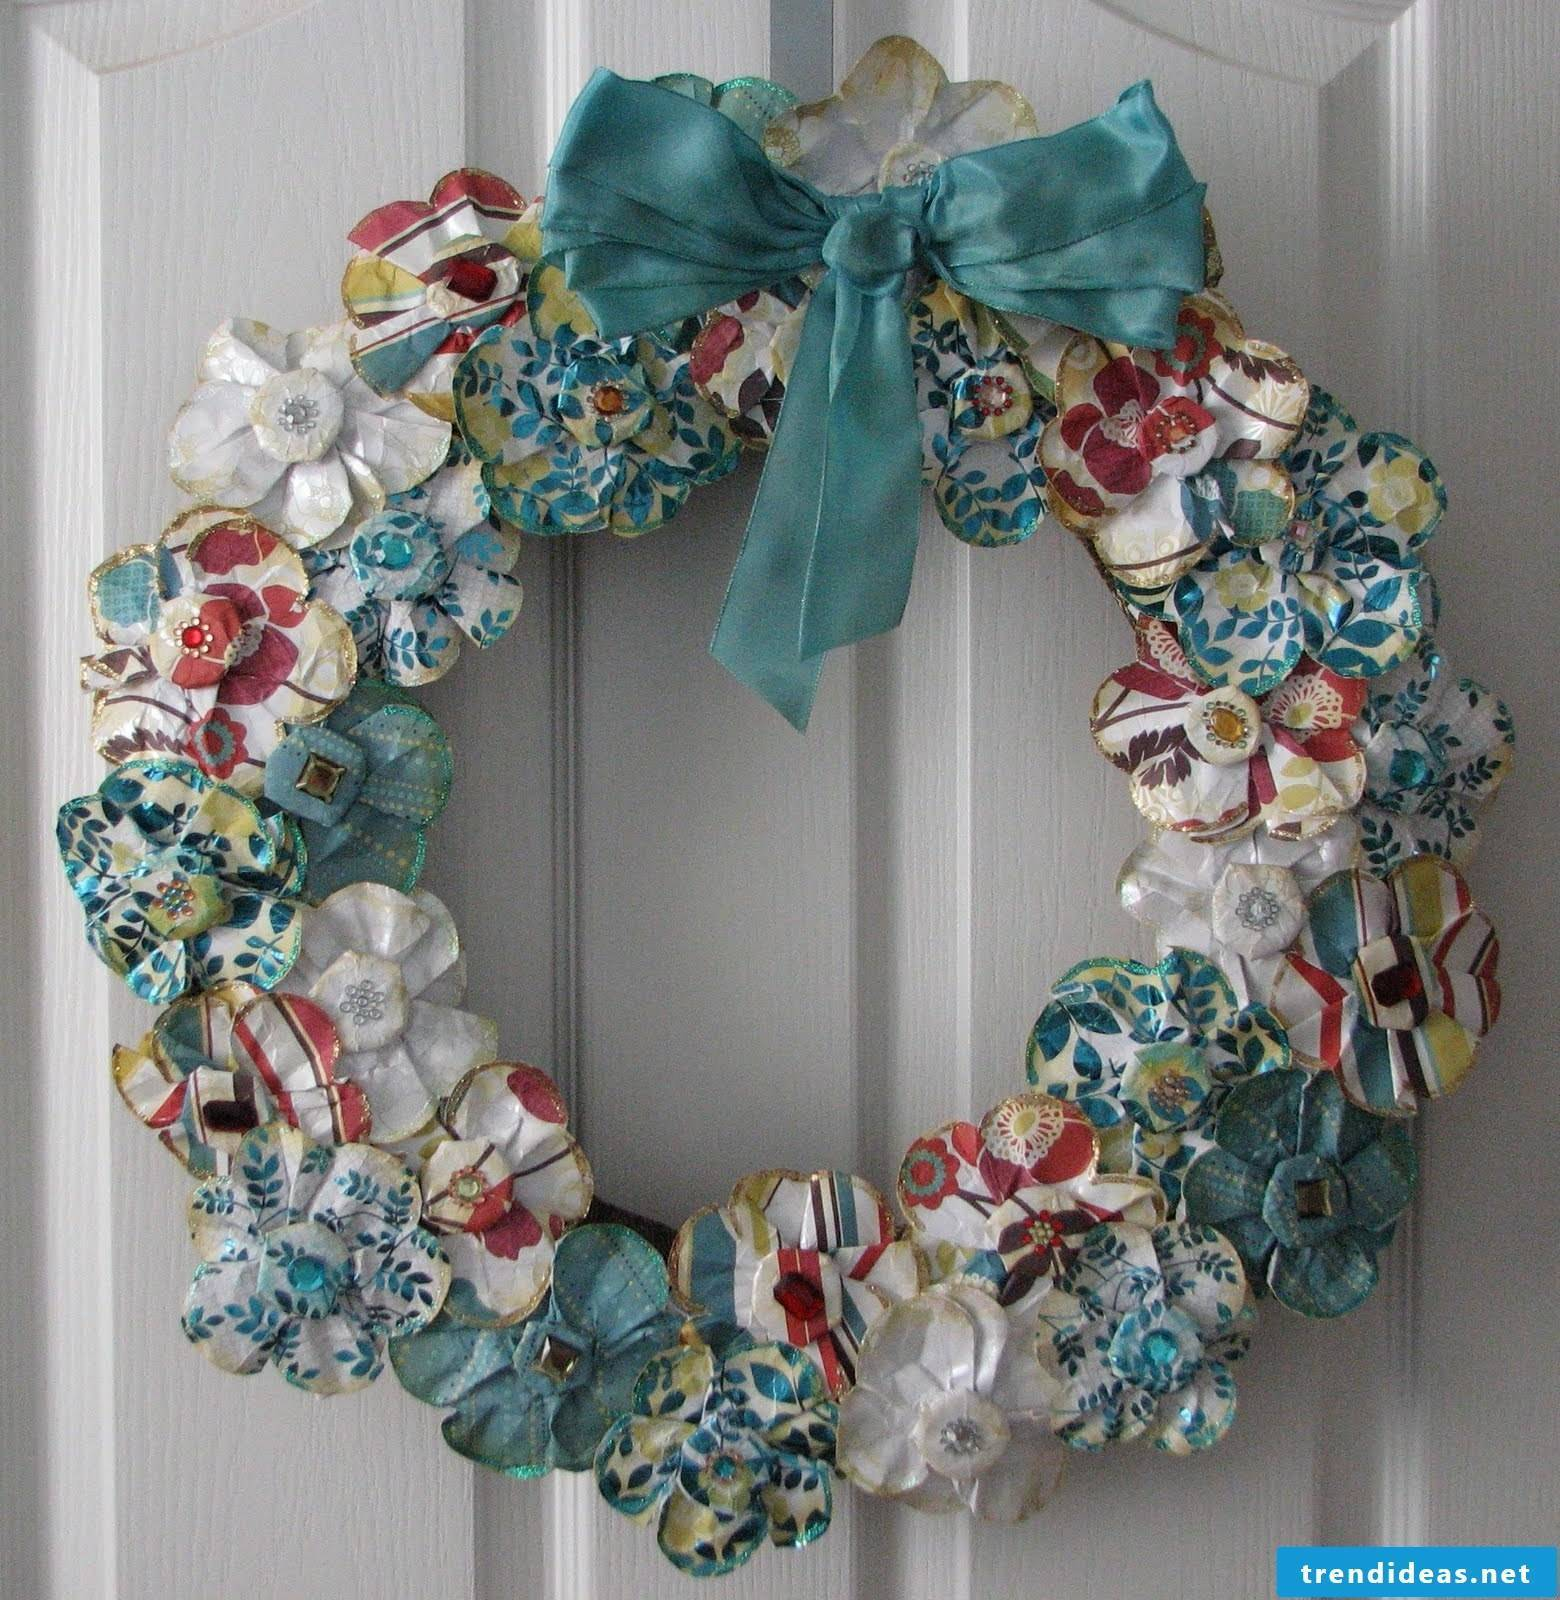 Door wreath of paper flowers - very nice decoration for Christmas